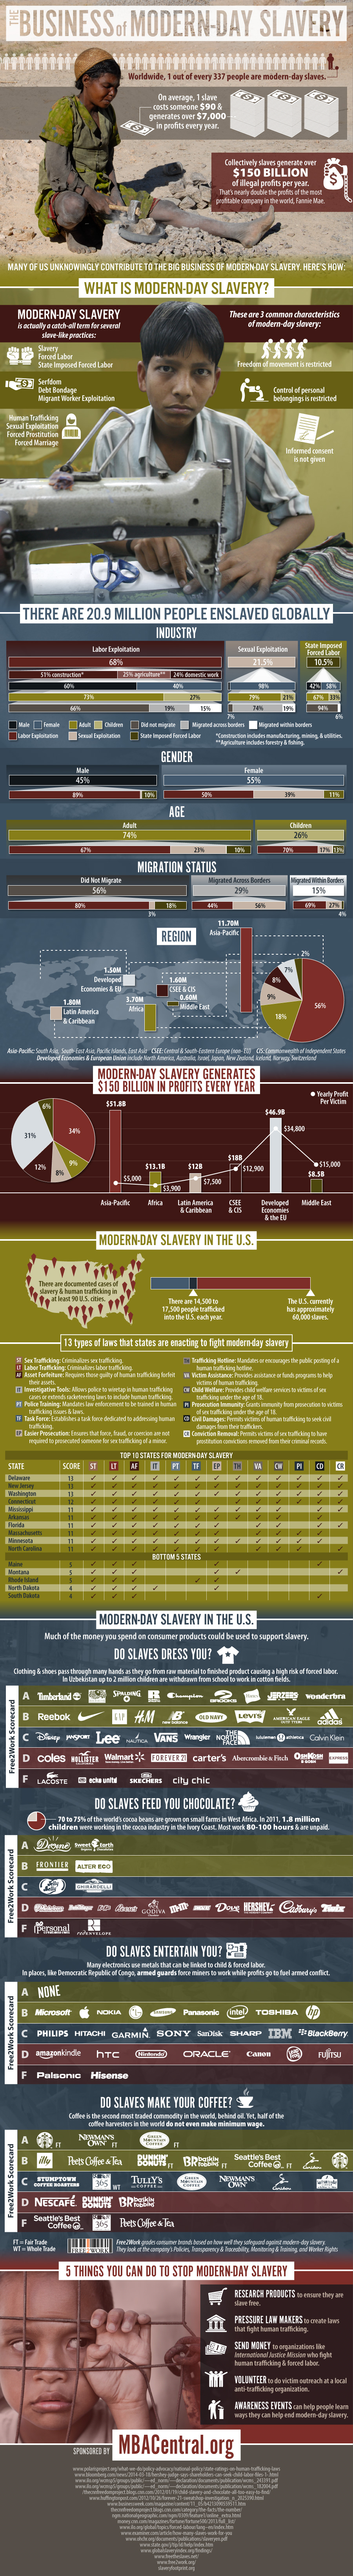 The Business of Modern-Day Slavery